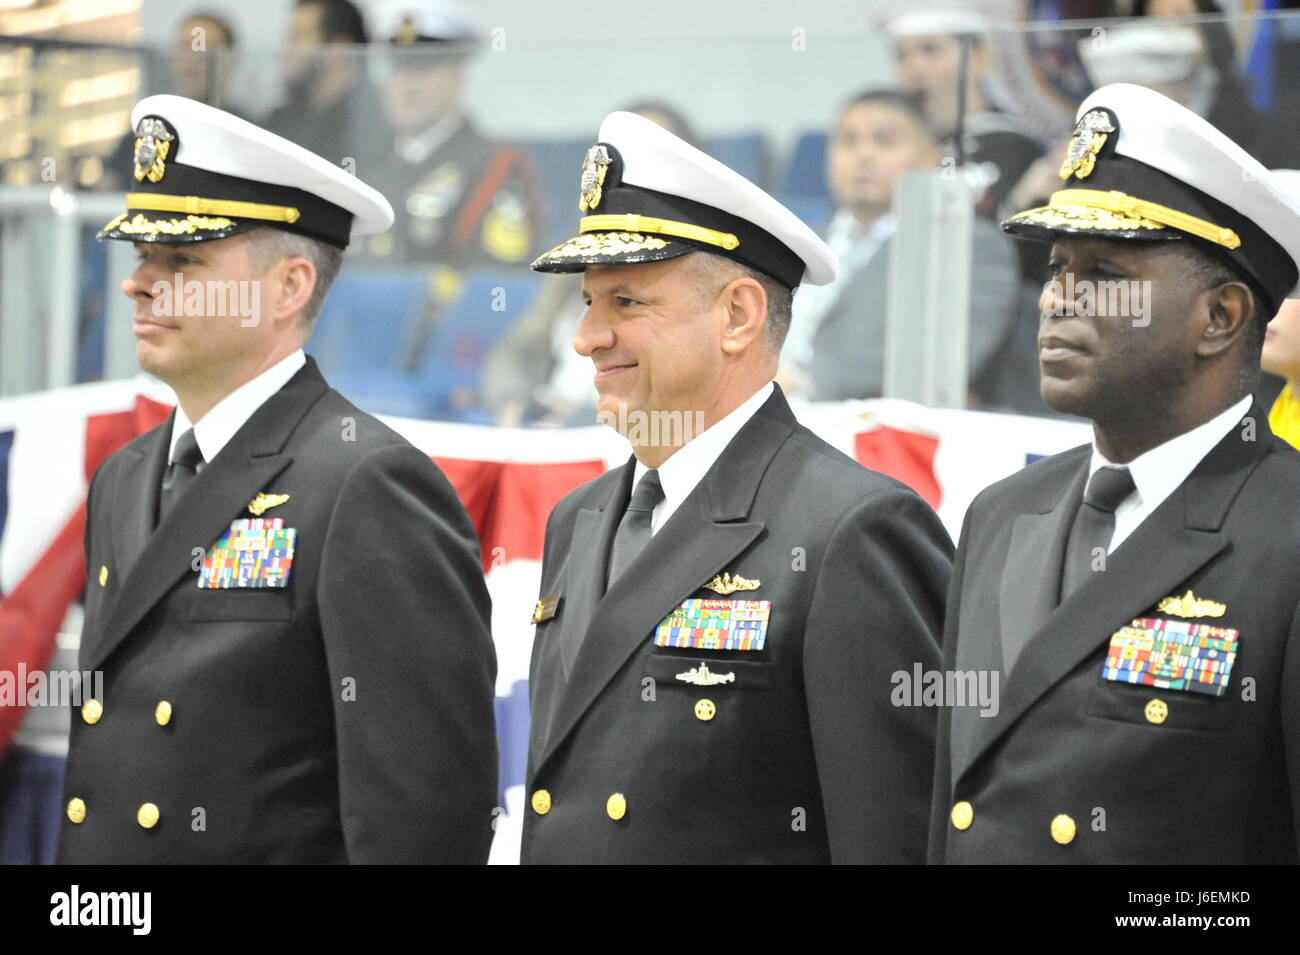 161216-N-CM124-287  GREAT LAKES, Ill. (Dec. 16, 2016) Chief of Naval Personnel Robert P. Burke center, joins Capt. - Stock Image